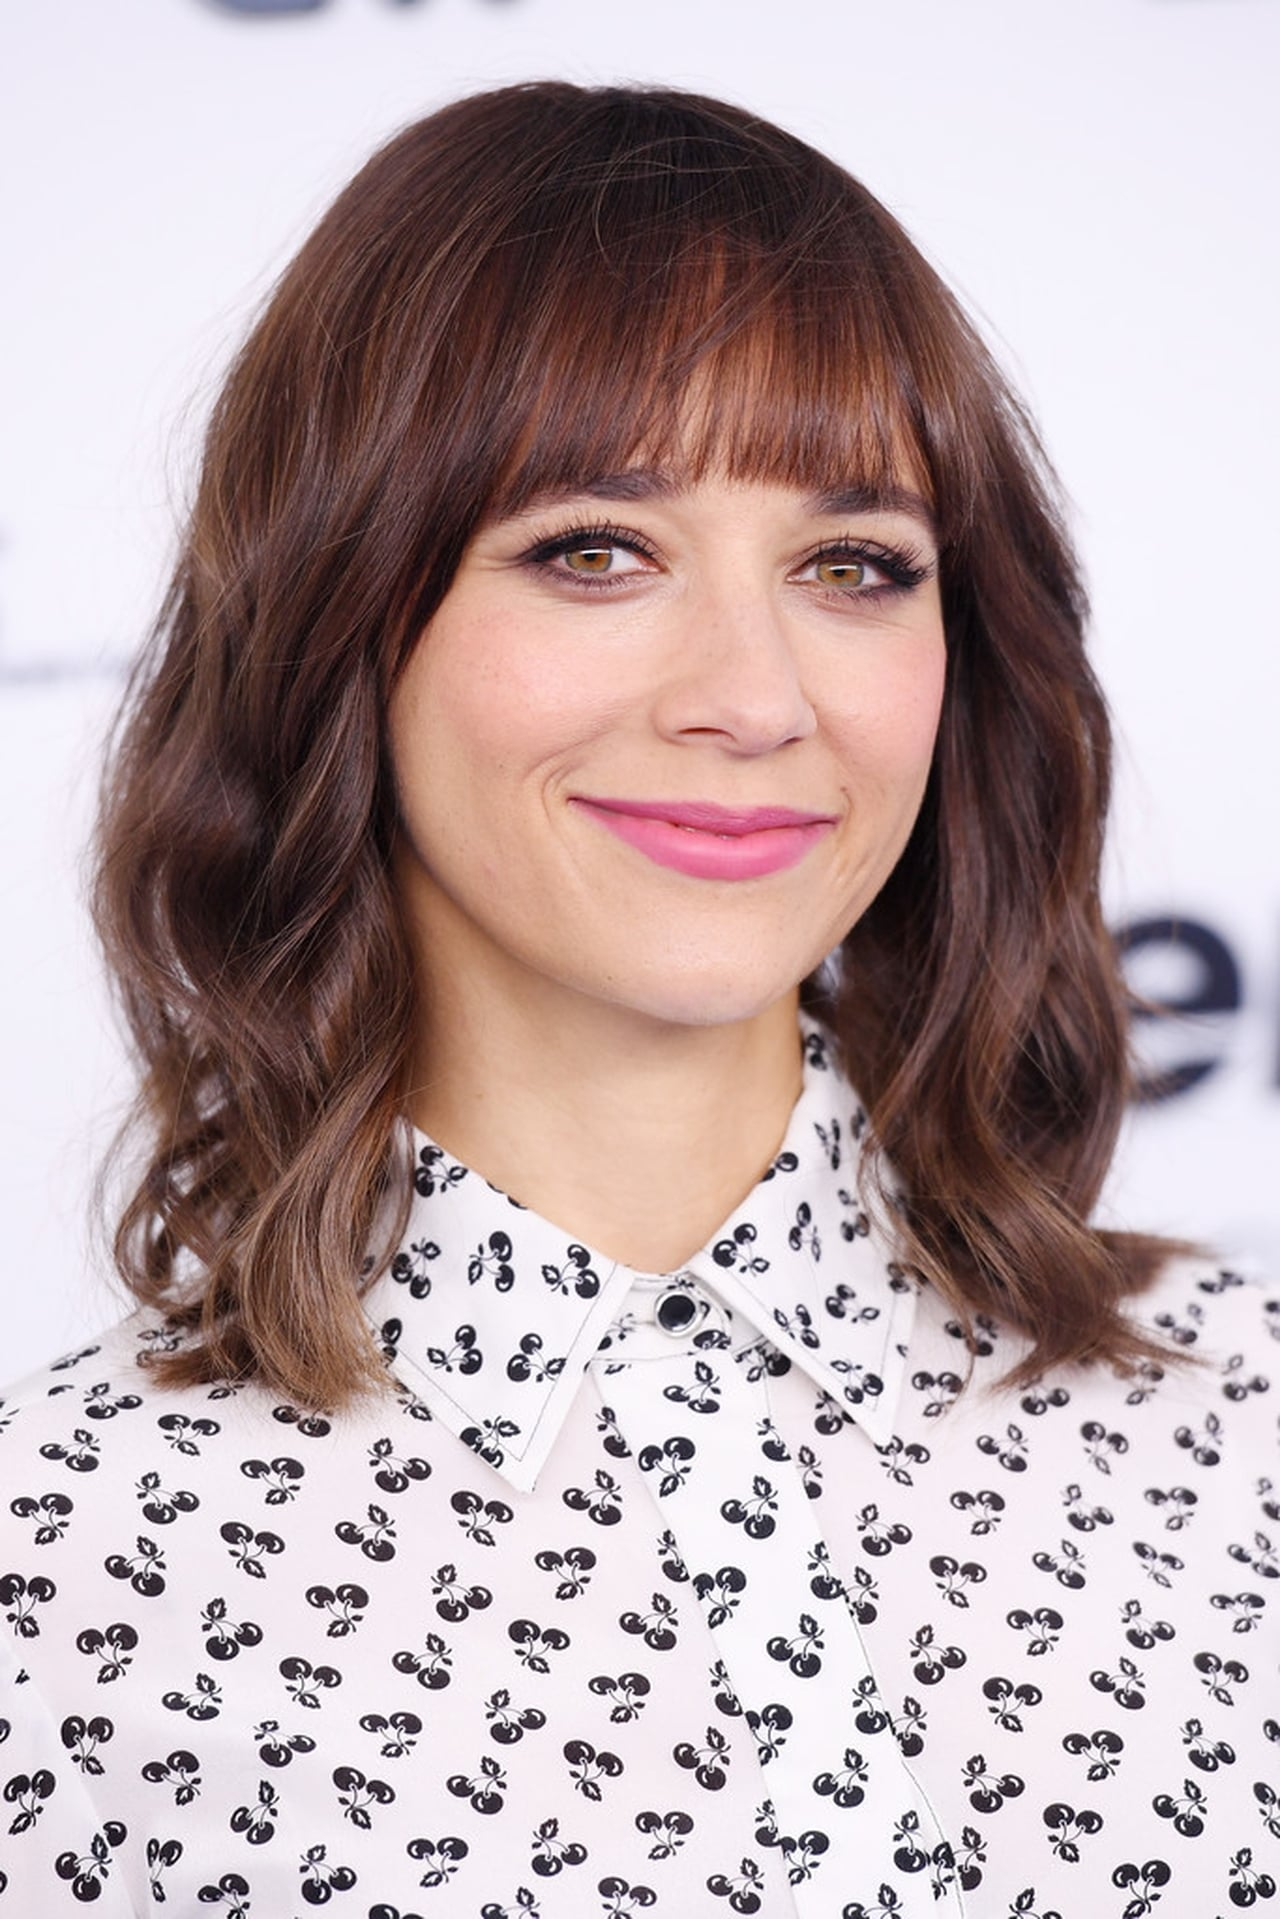 Rashida Jones isEmma